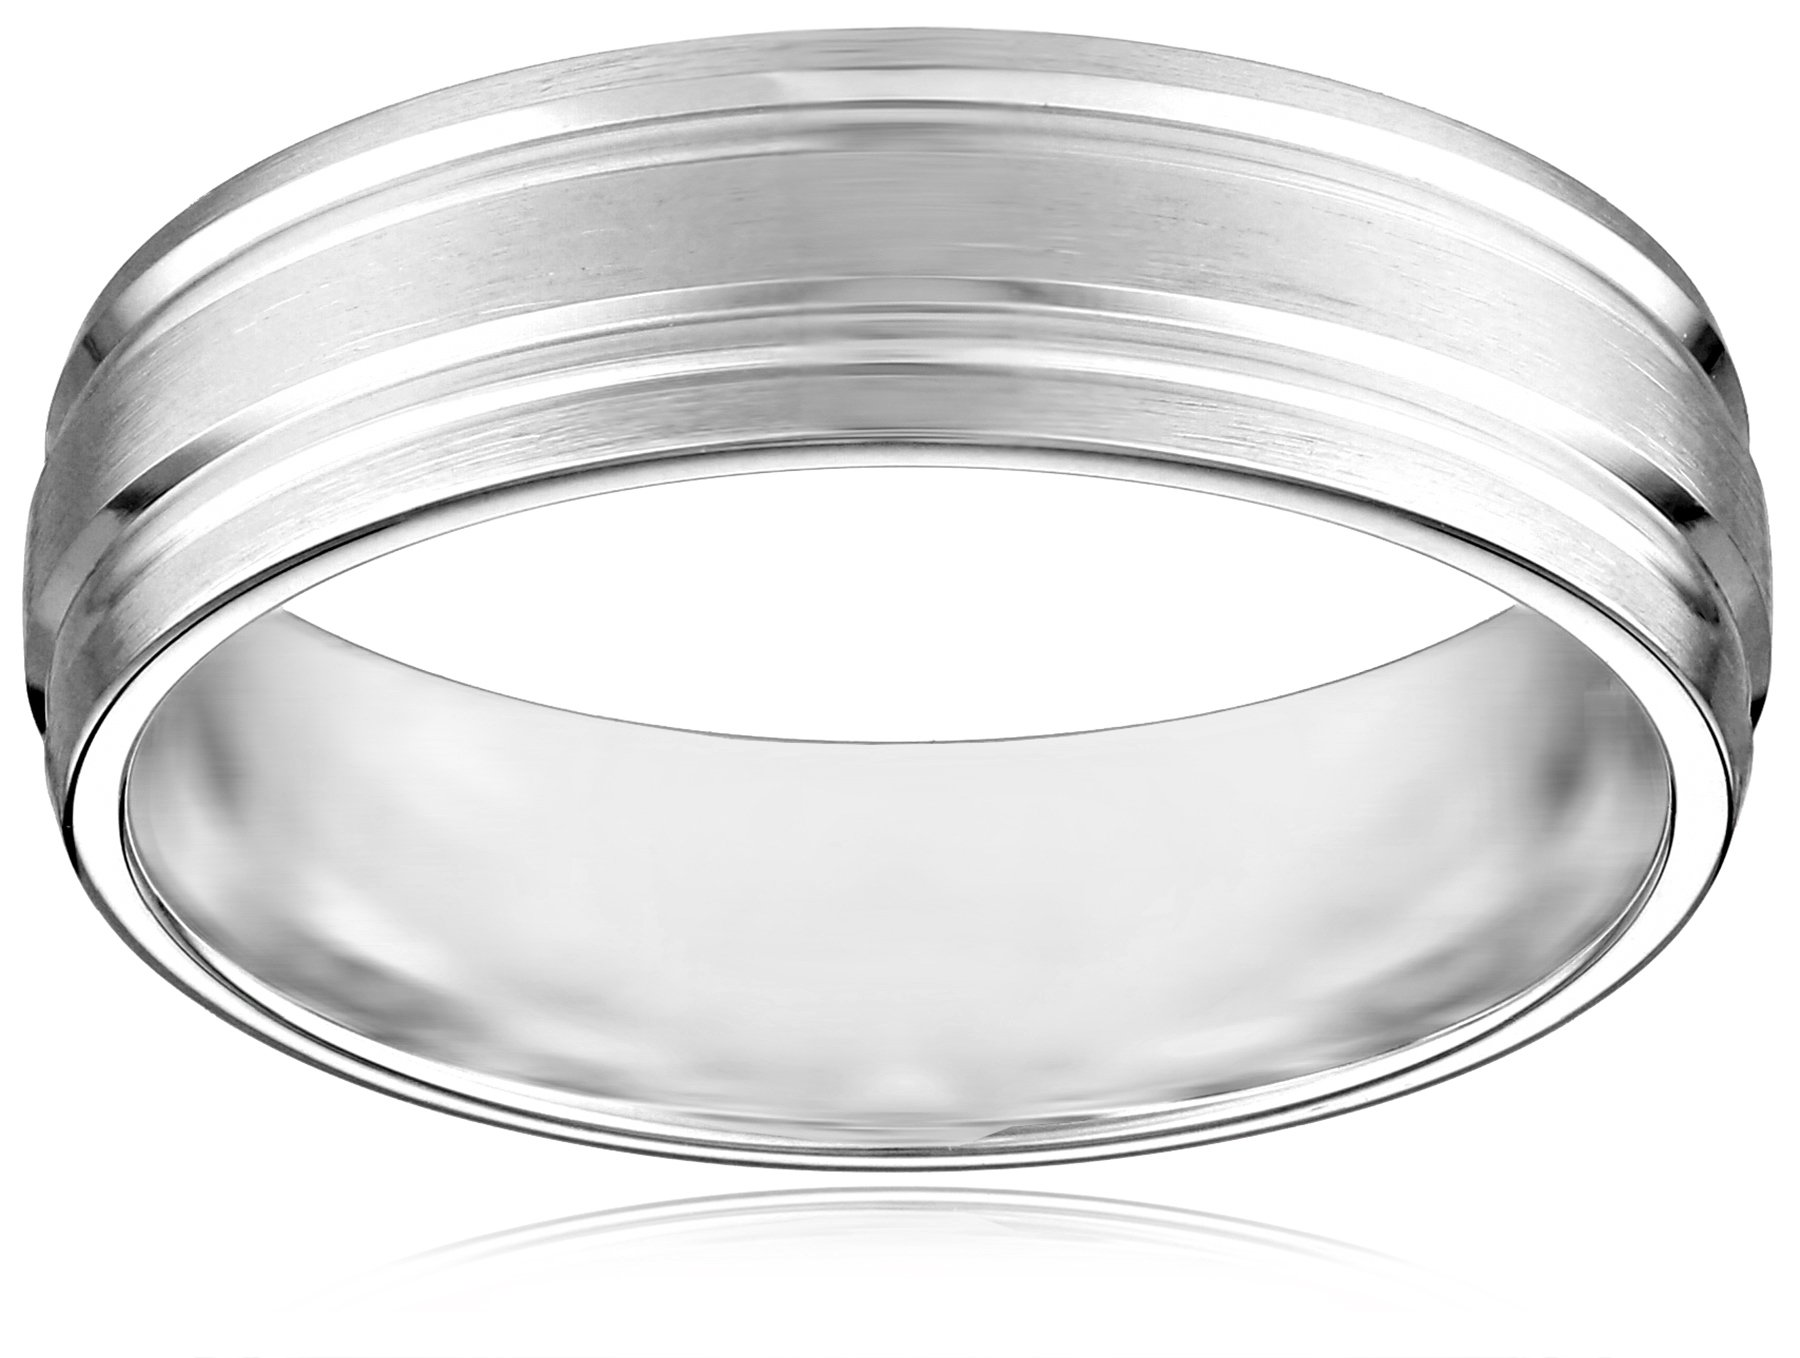 10k White Gold 6mm Comfort Fit Wedding Band with Satin Finish and Two High Polished Center Cuts, Size 11.5